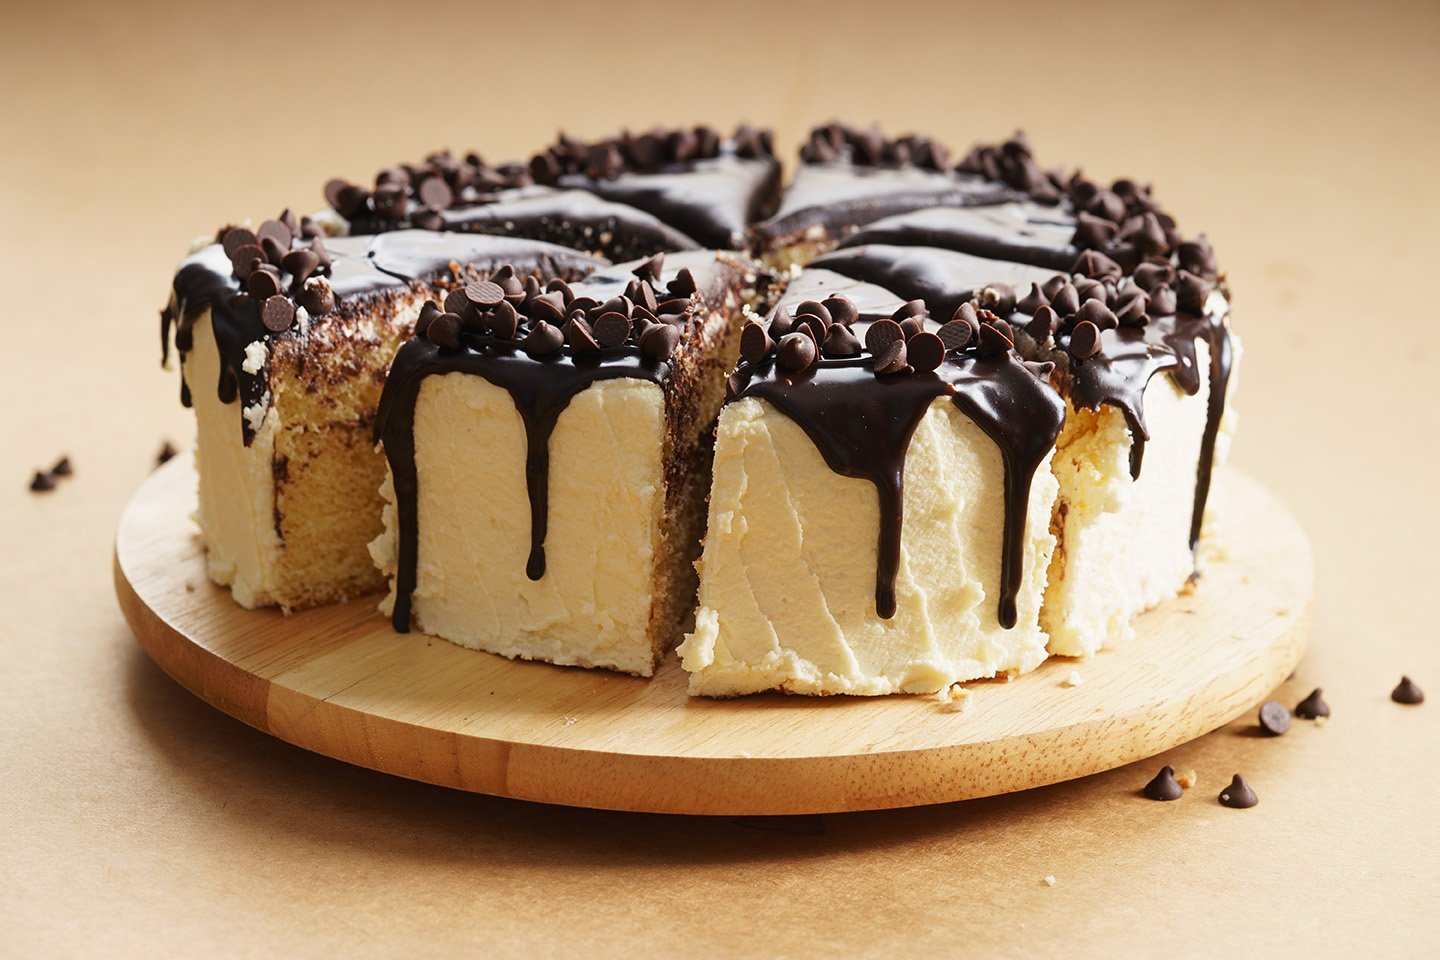 Round Cake With Chocolate Topping